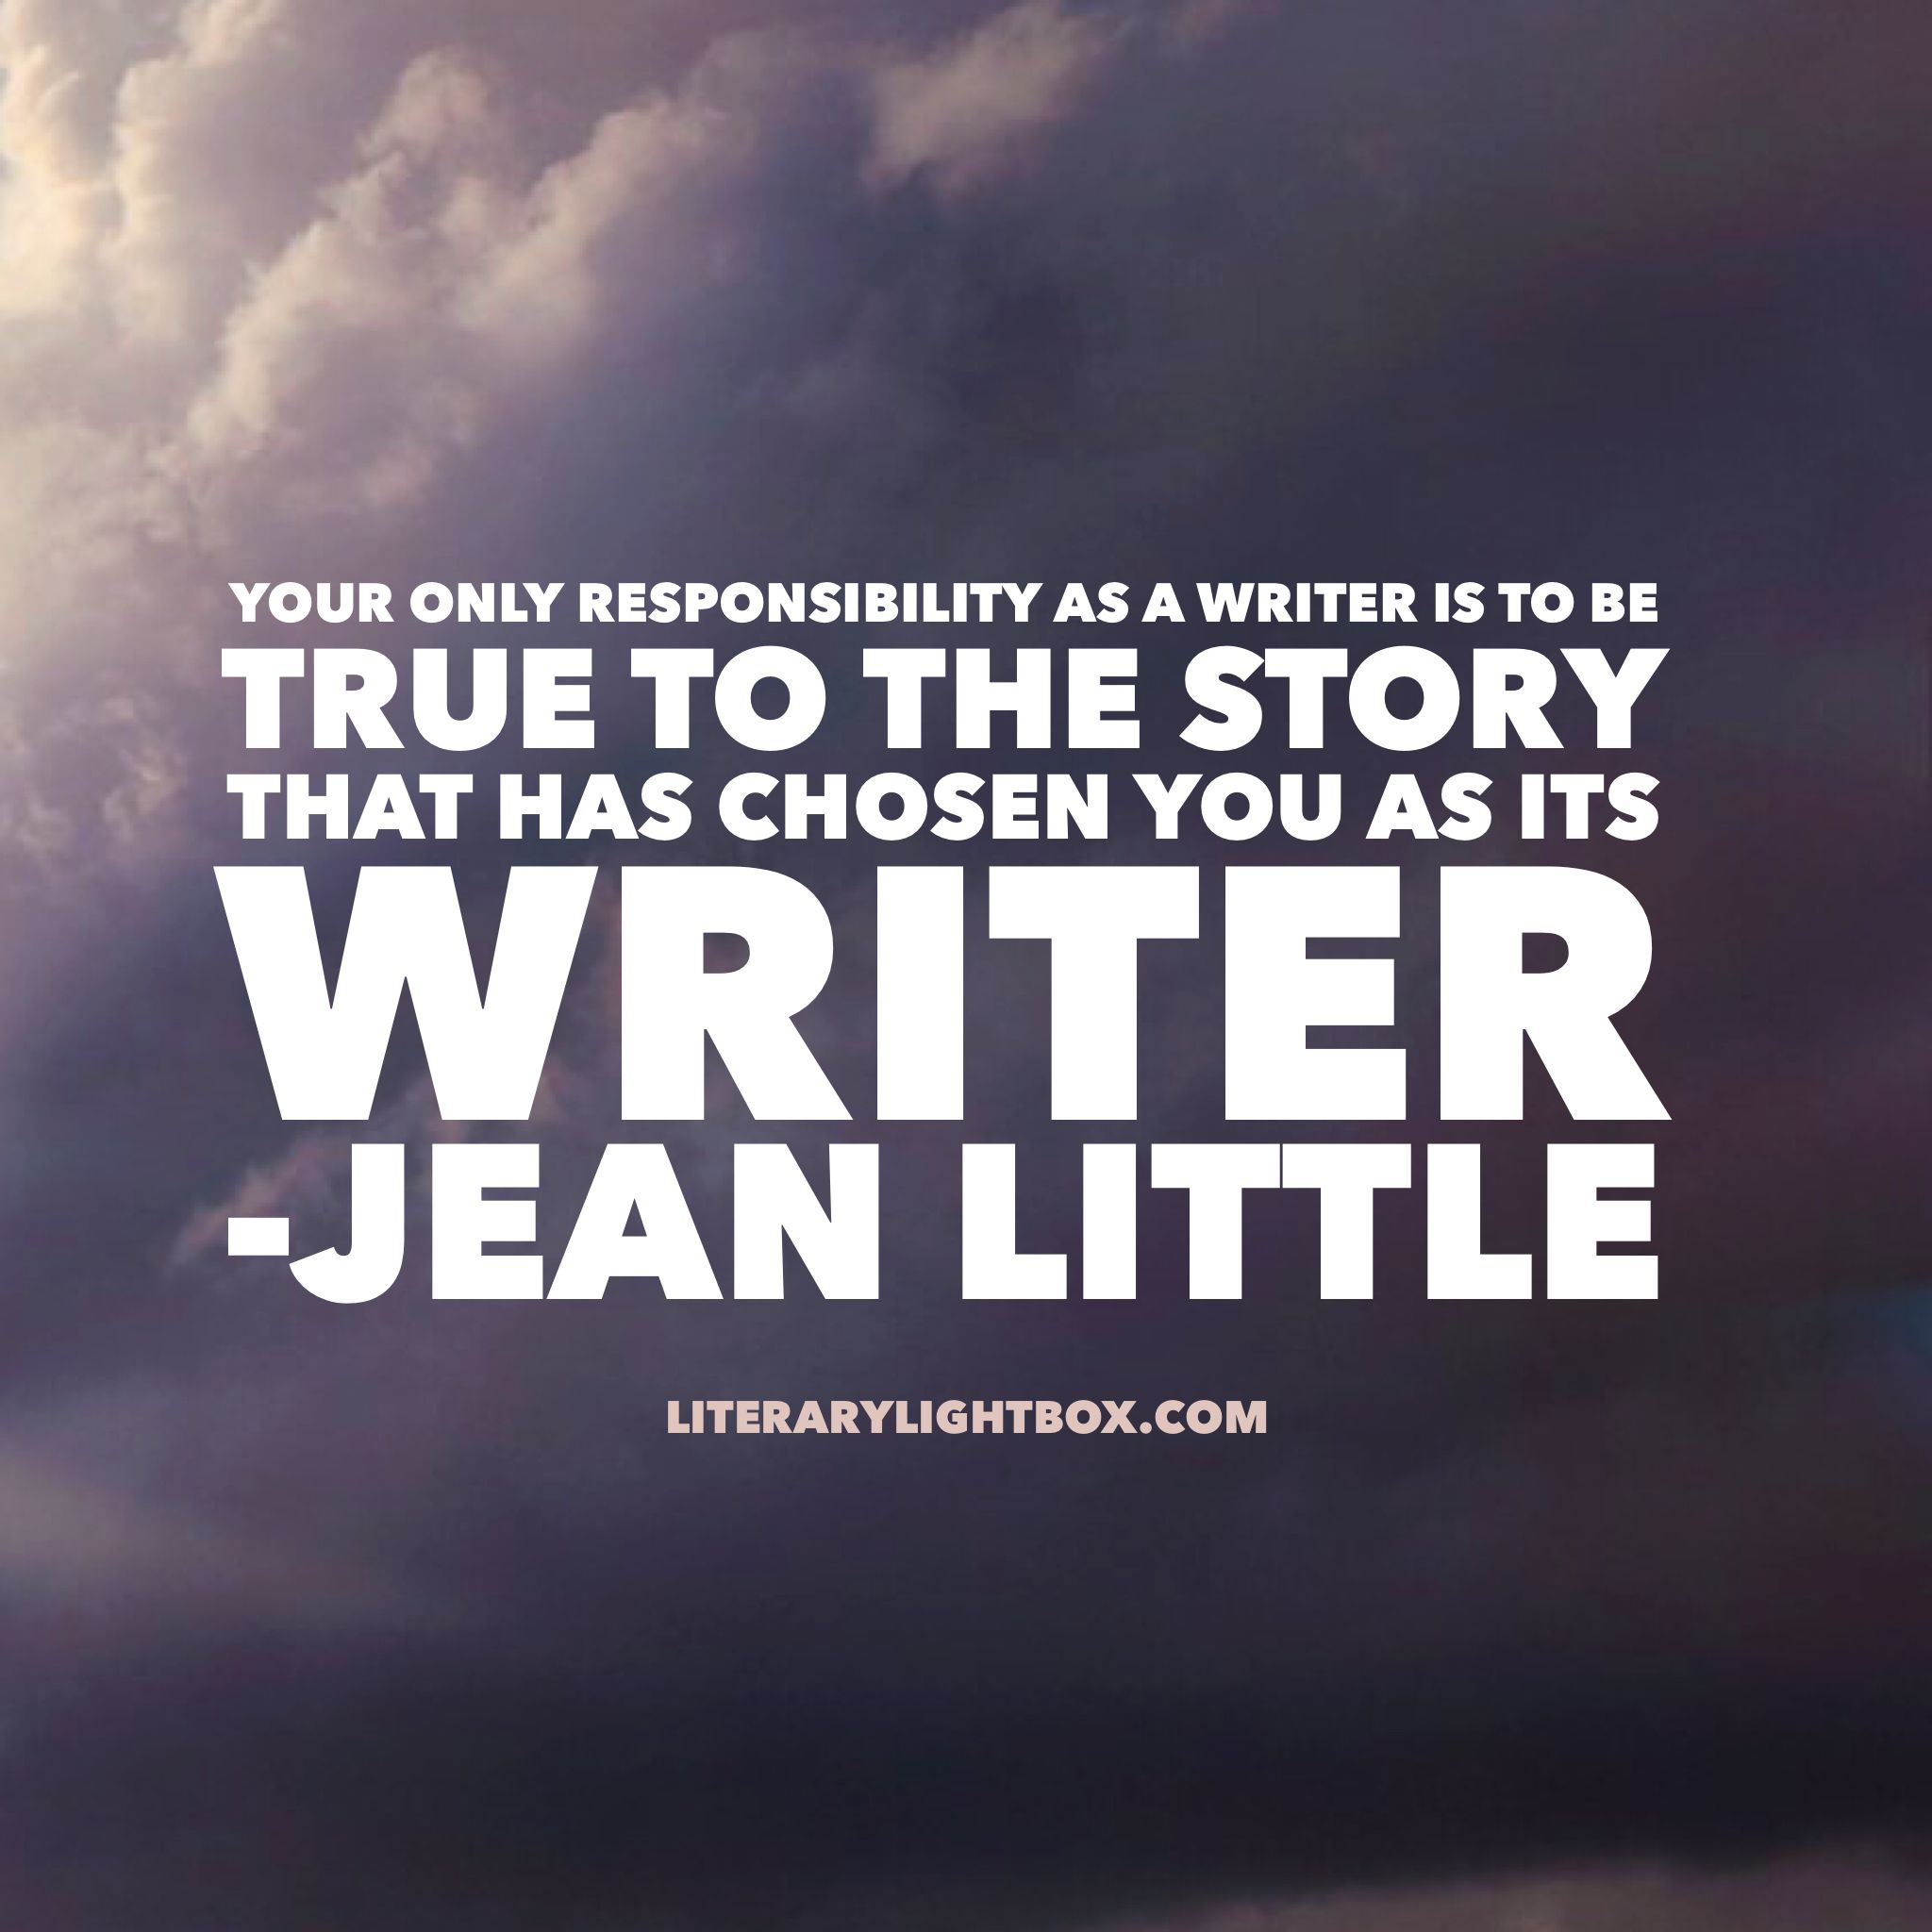 Your only responsibility as a writer is to be true to the